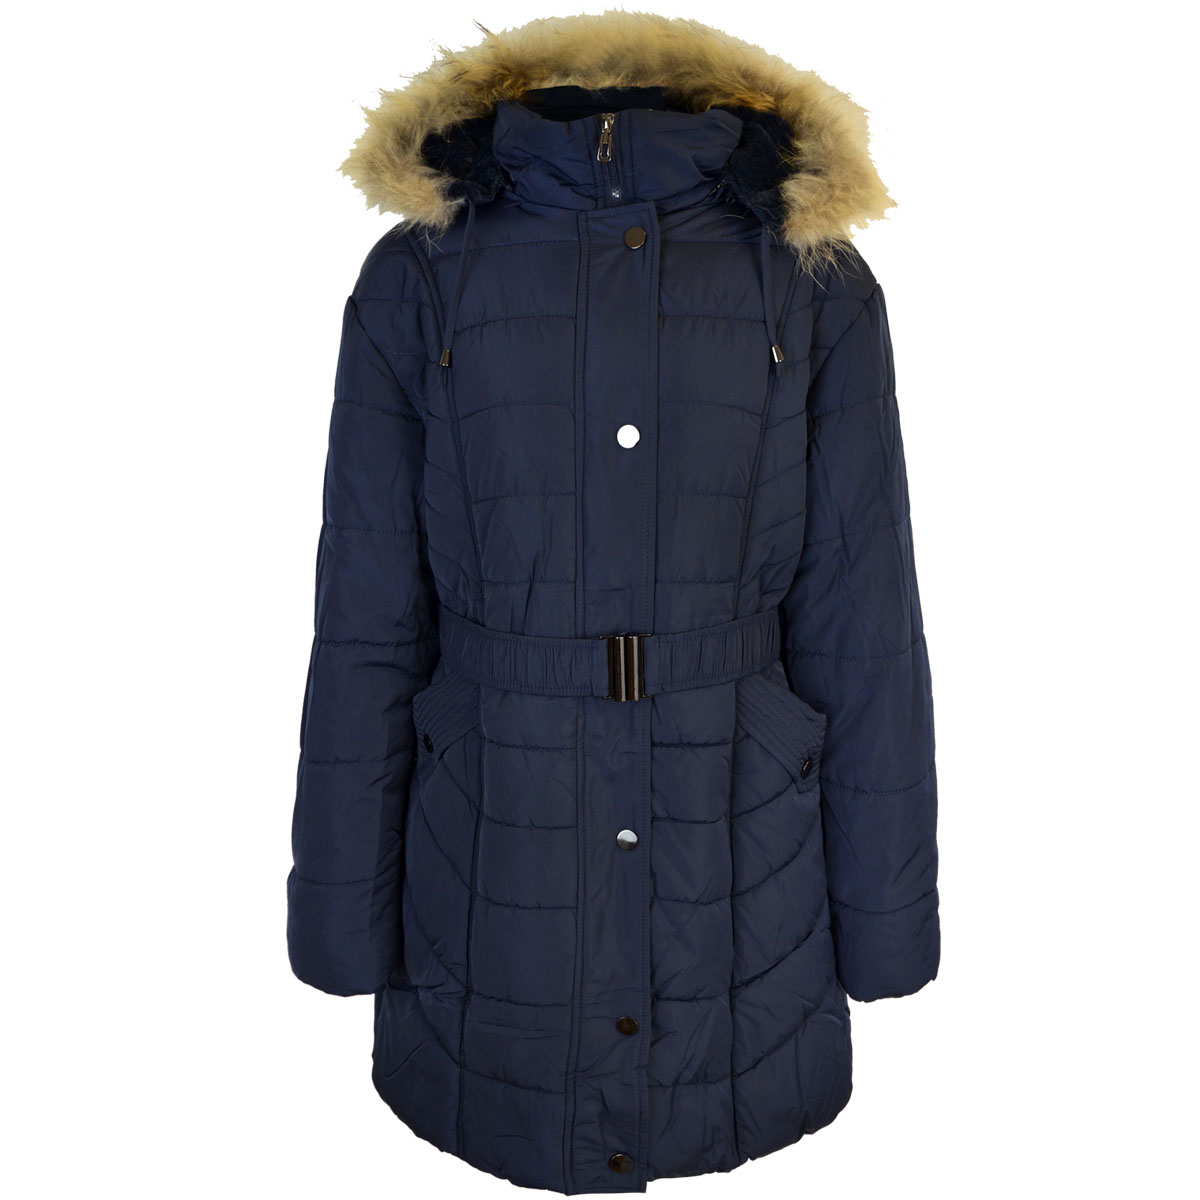 thumbnail 7 - Womens-Ladies-Plus-Over-Size-Winter-Long-Jacket-Puffer-Coat-Detachable-Hood